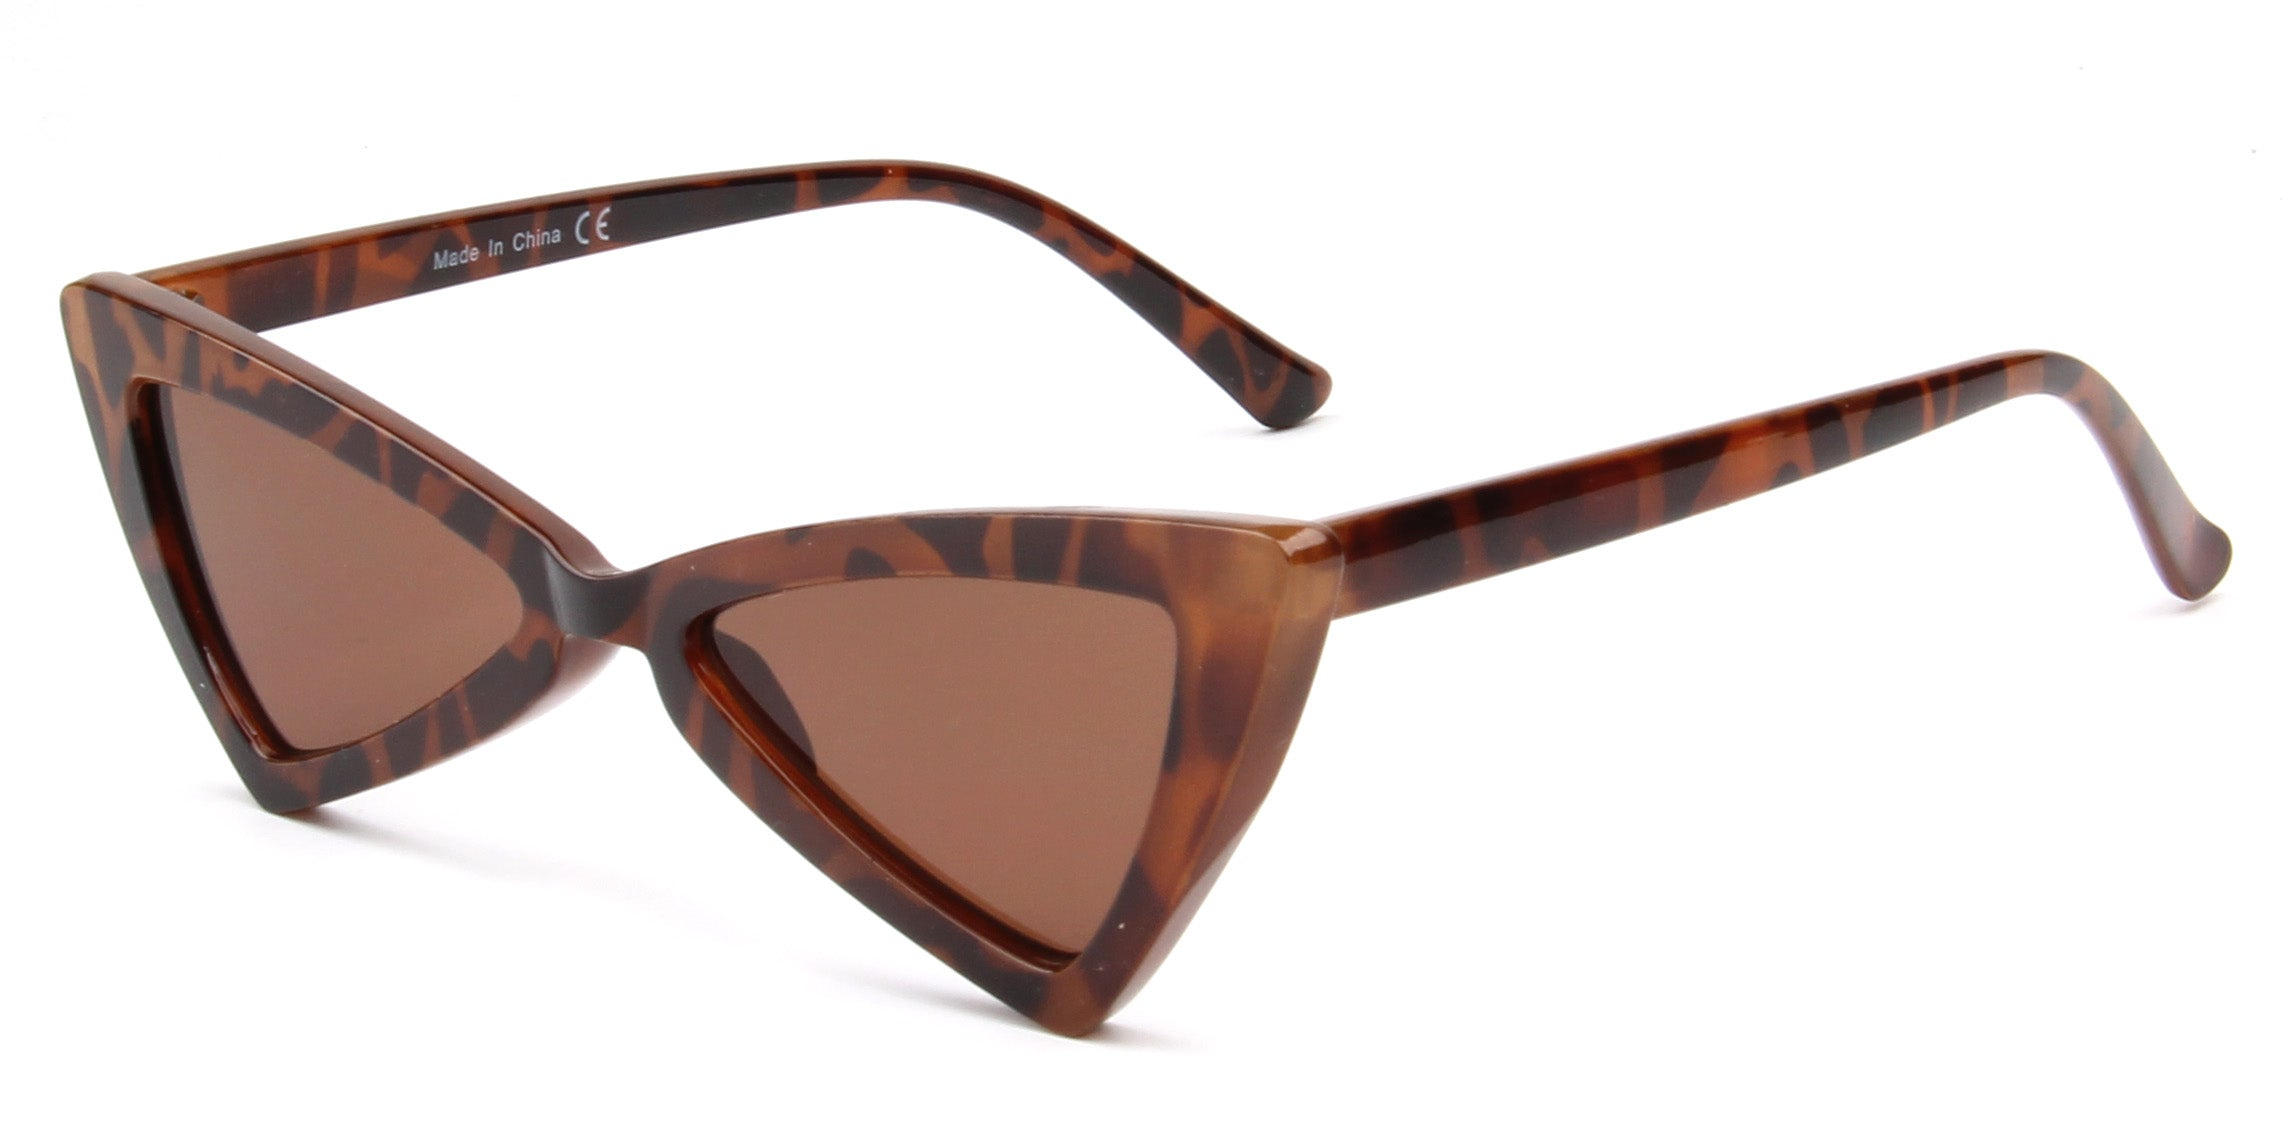 Akcessoryz-women cateye sunglasses with brown lens and tortoise frame